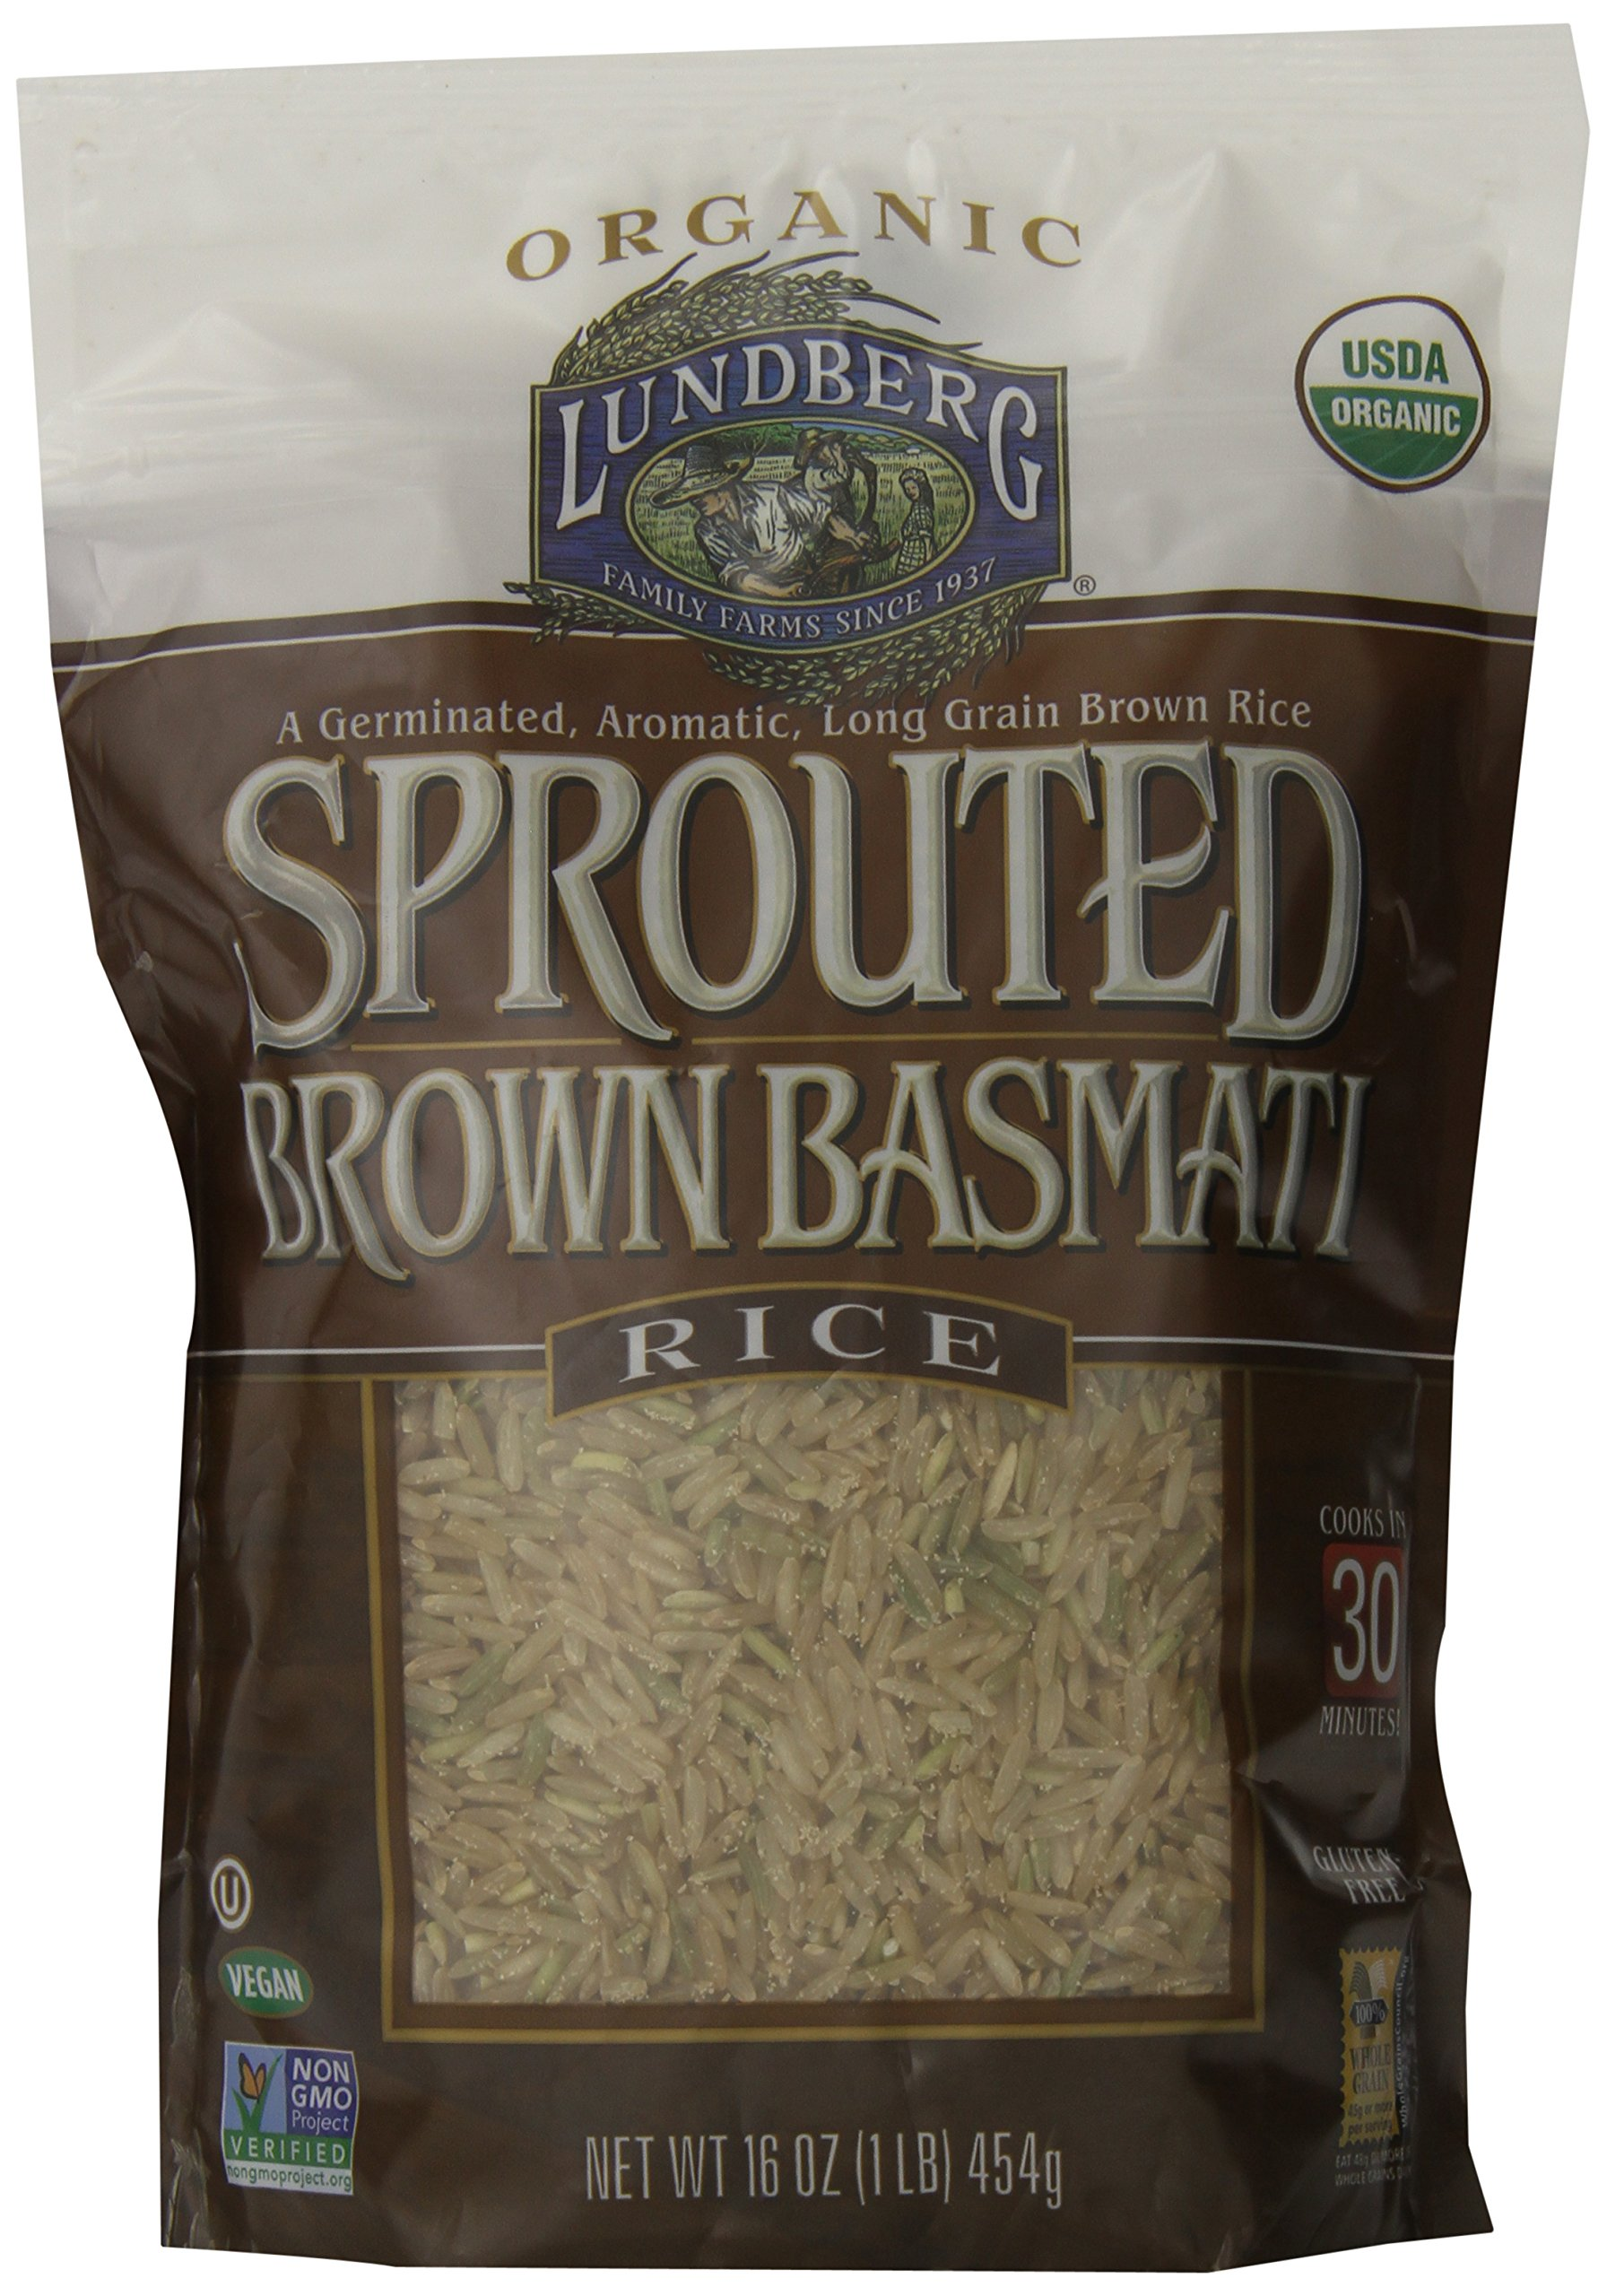 Lundberg Family Farms Sprouted Brown Basmati Rice, 16 Ounce